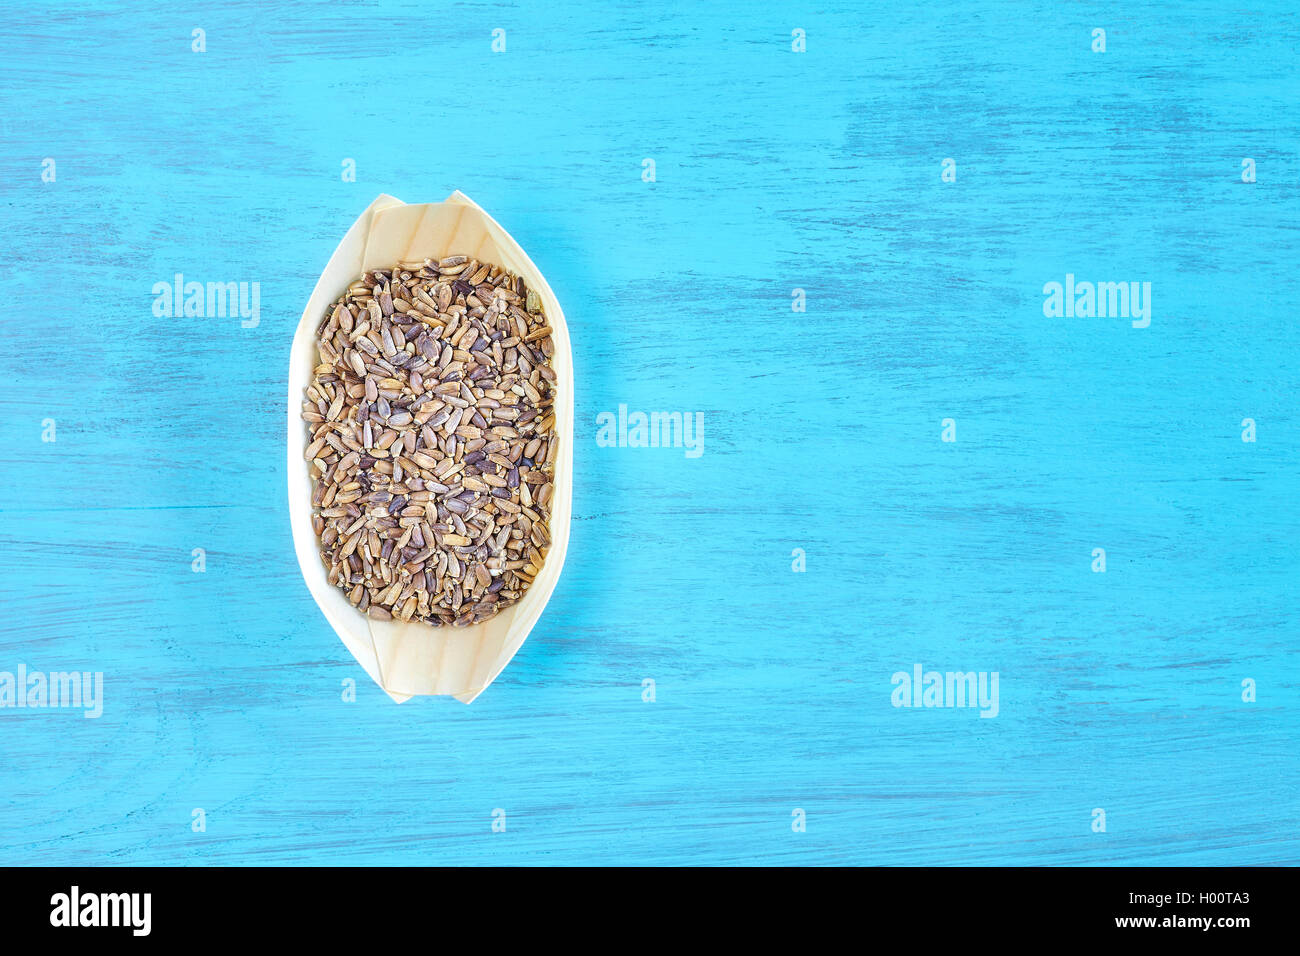 Seeds of a milk thistle (Silybum marianum) in a wooden bowl on rustic table, space for text, top view. - Stock Image